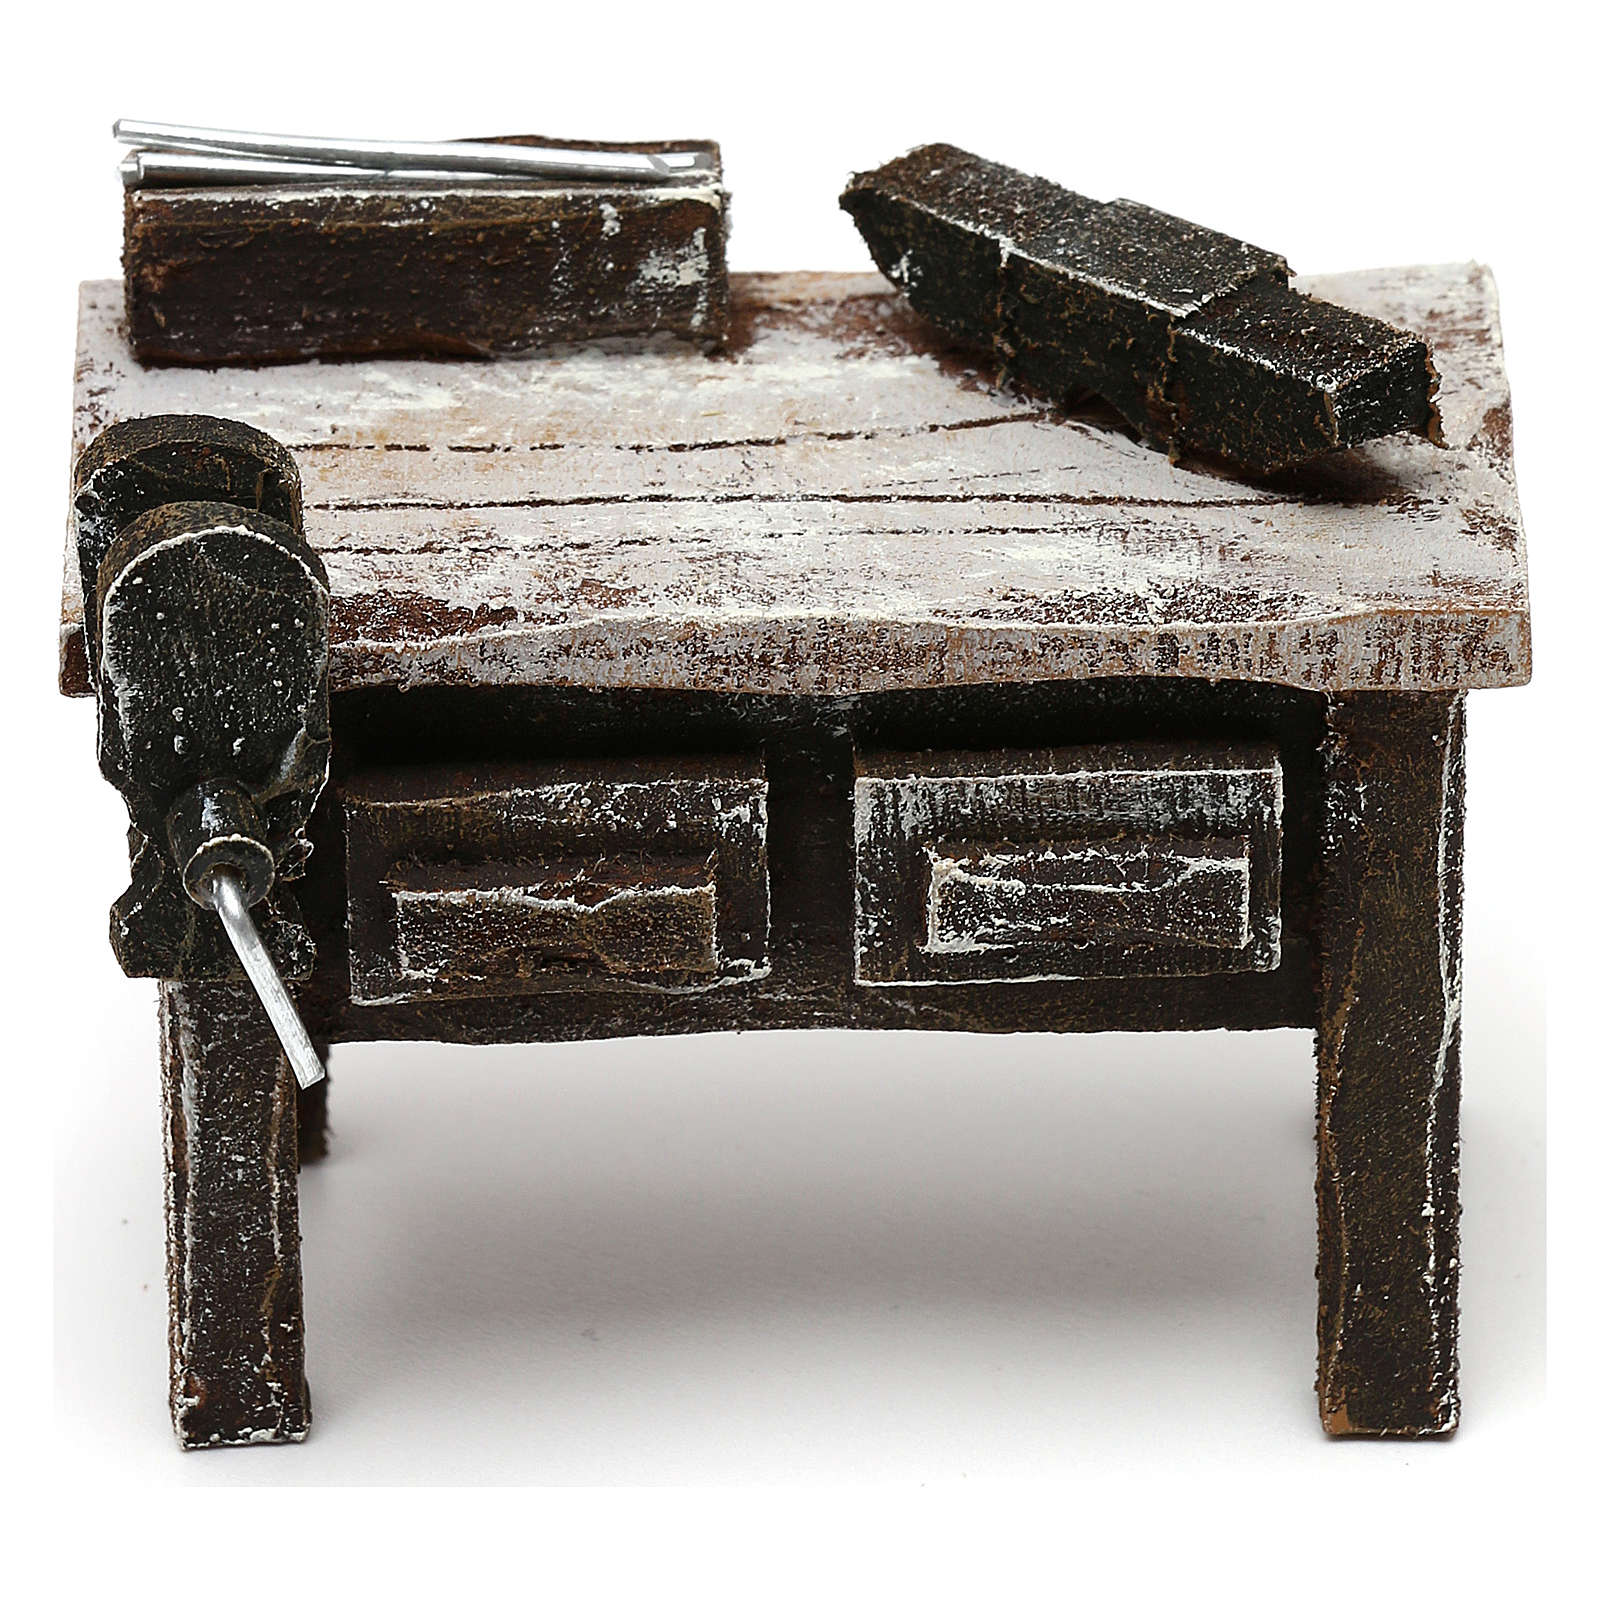 Blacksmith workbench in resin Nativity scenes 10 cm 5x5x5 cm 4